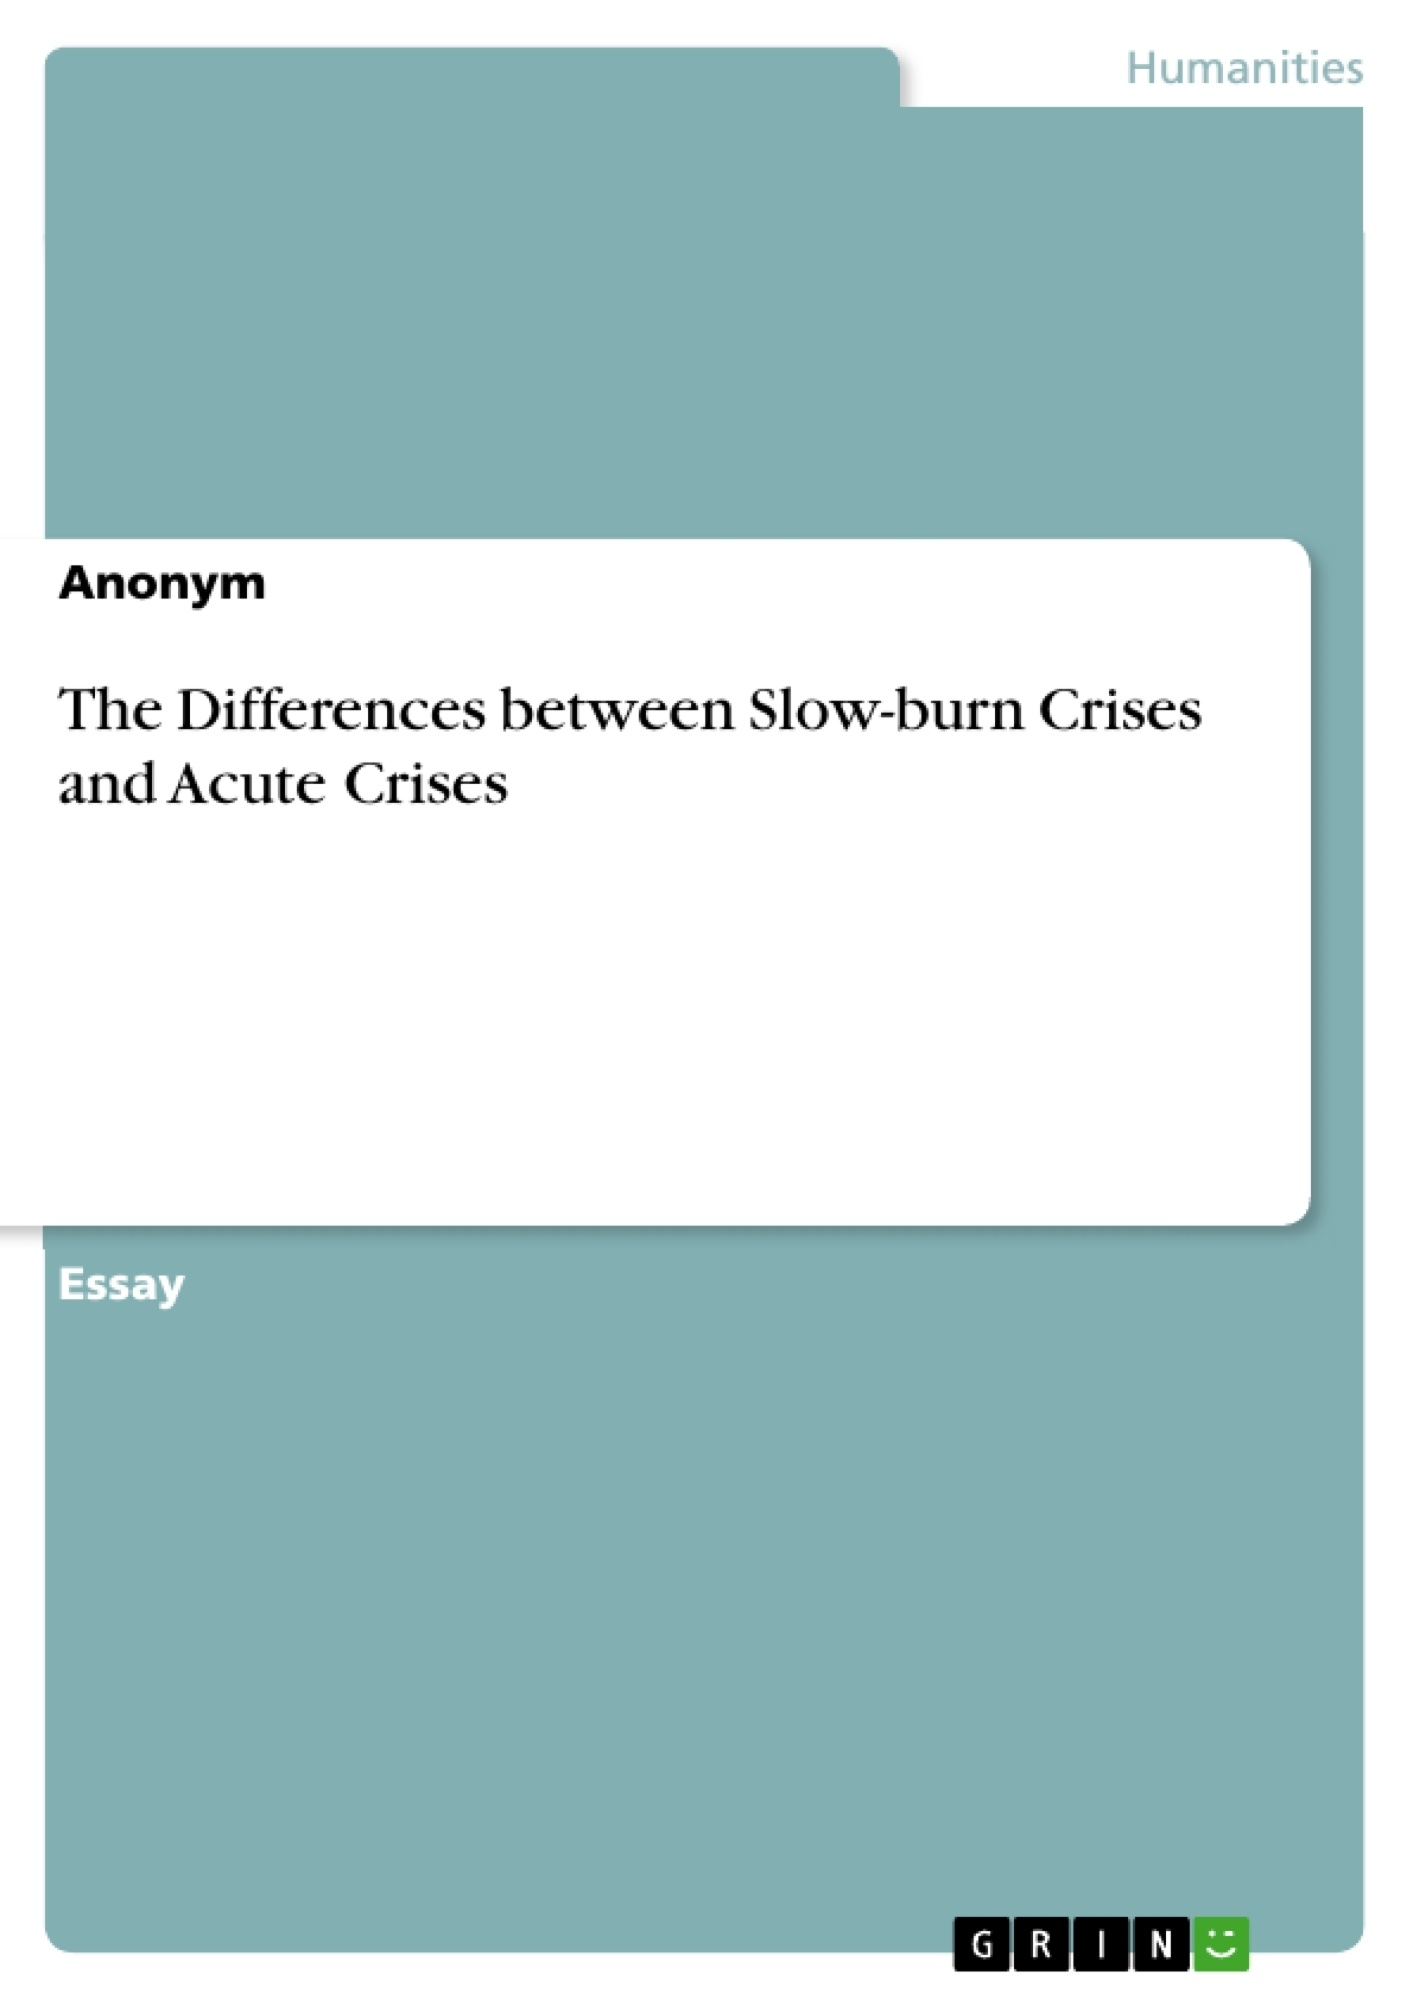 Title: The Differences between Slow-burn Crises and Acute Crises